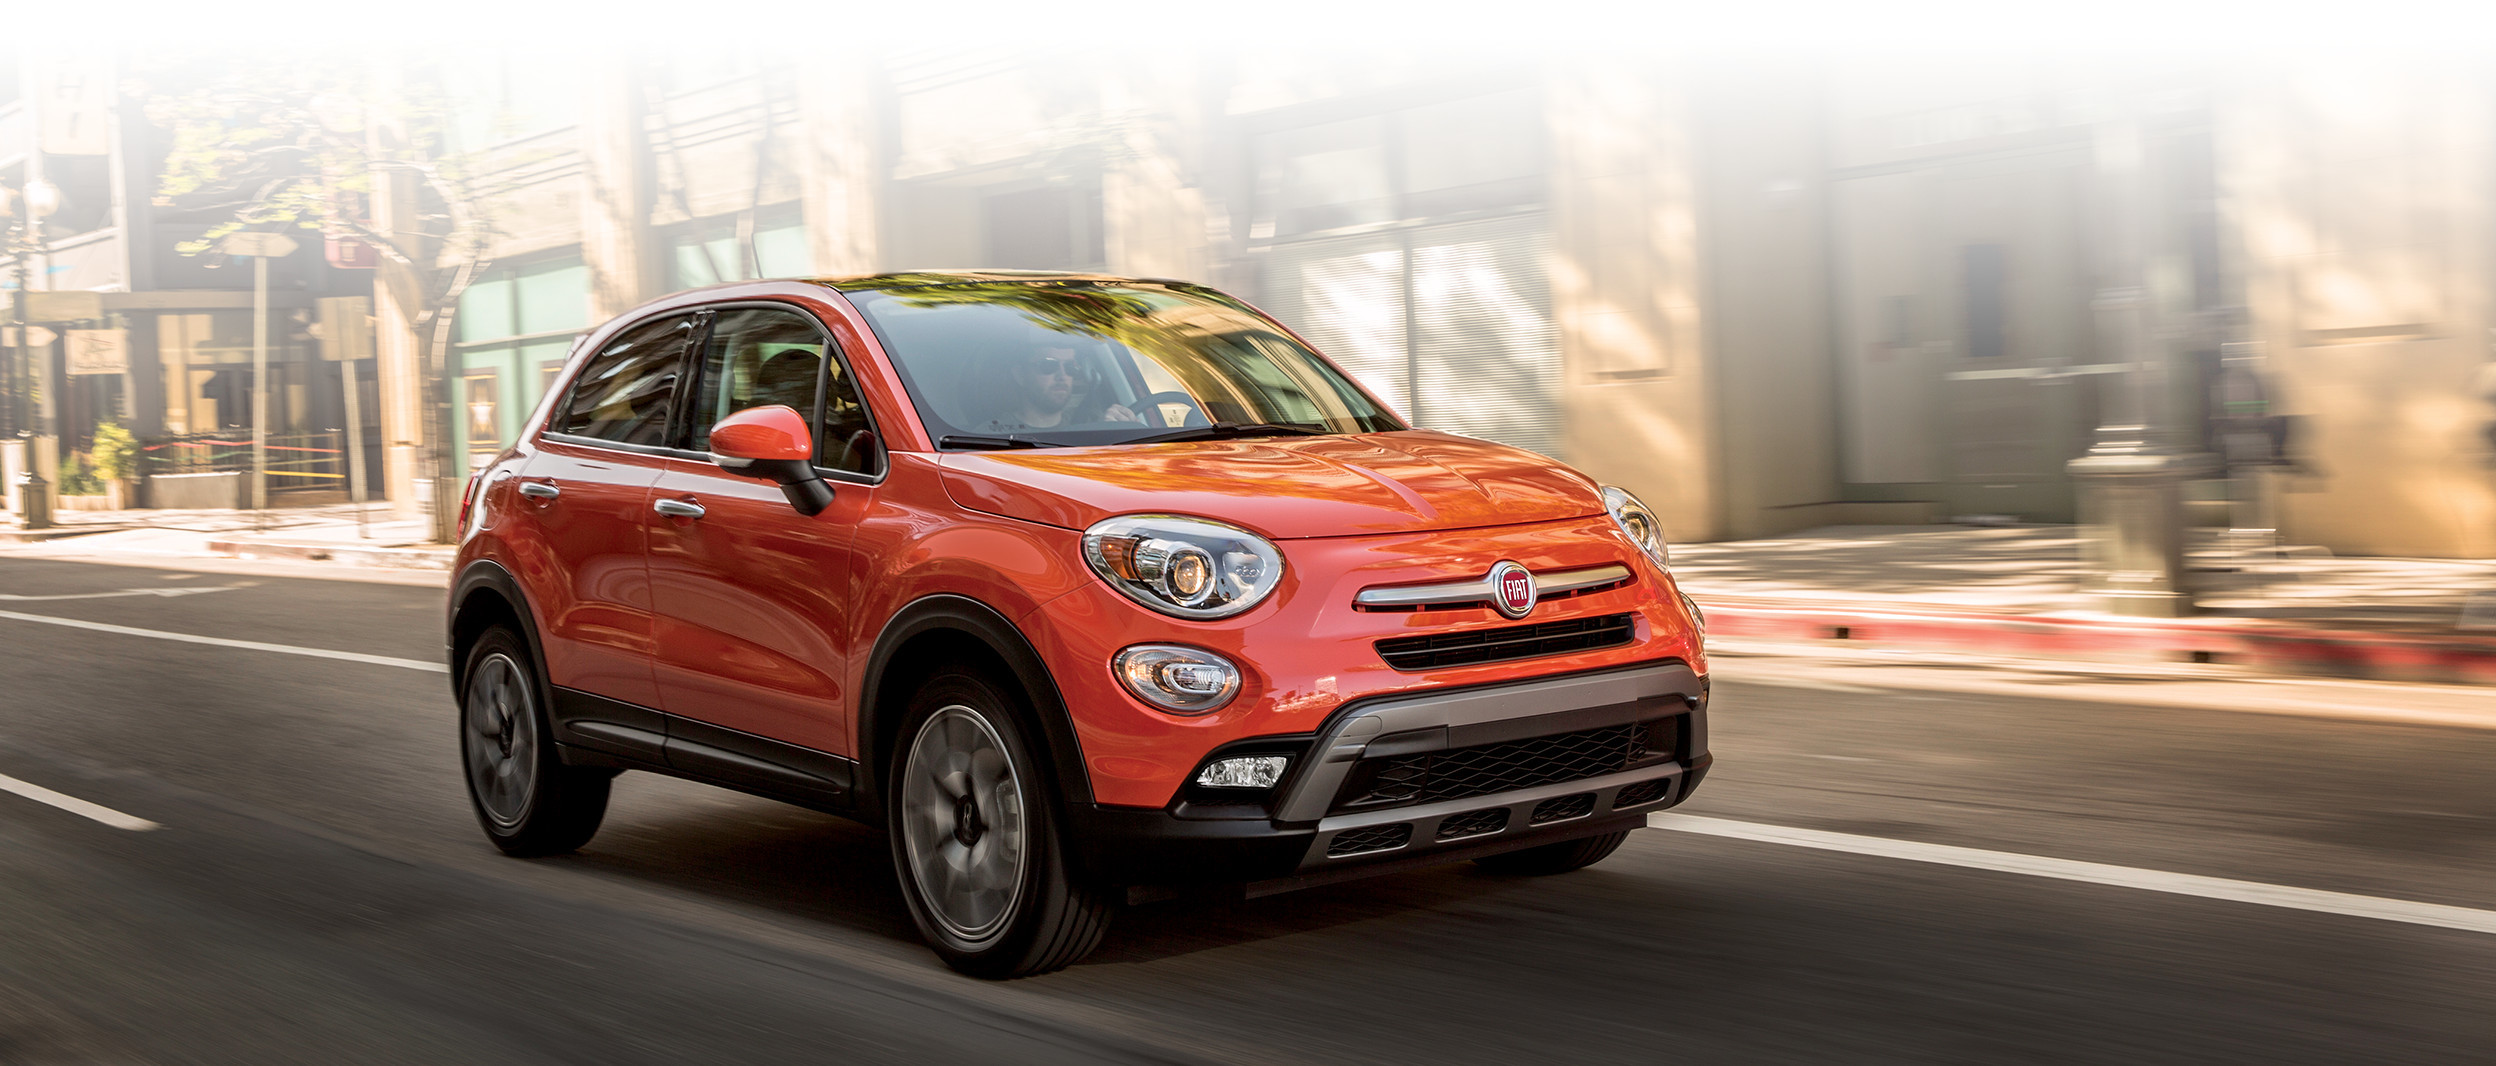 2018 Fiat 500X crossover front view grille in red